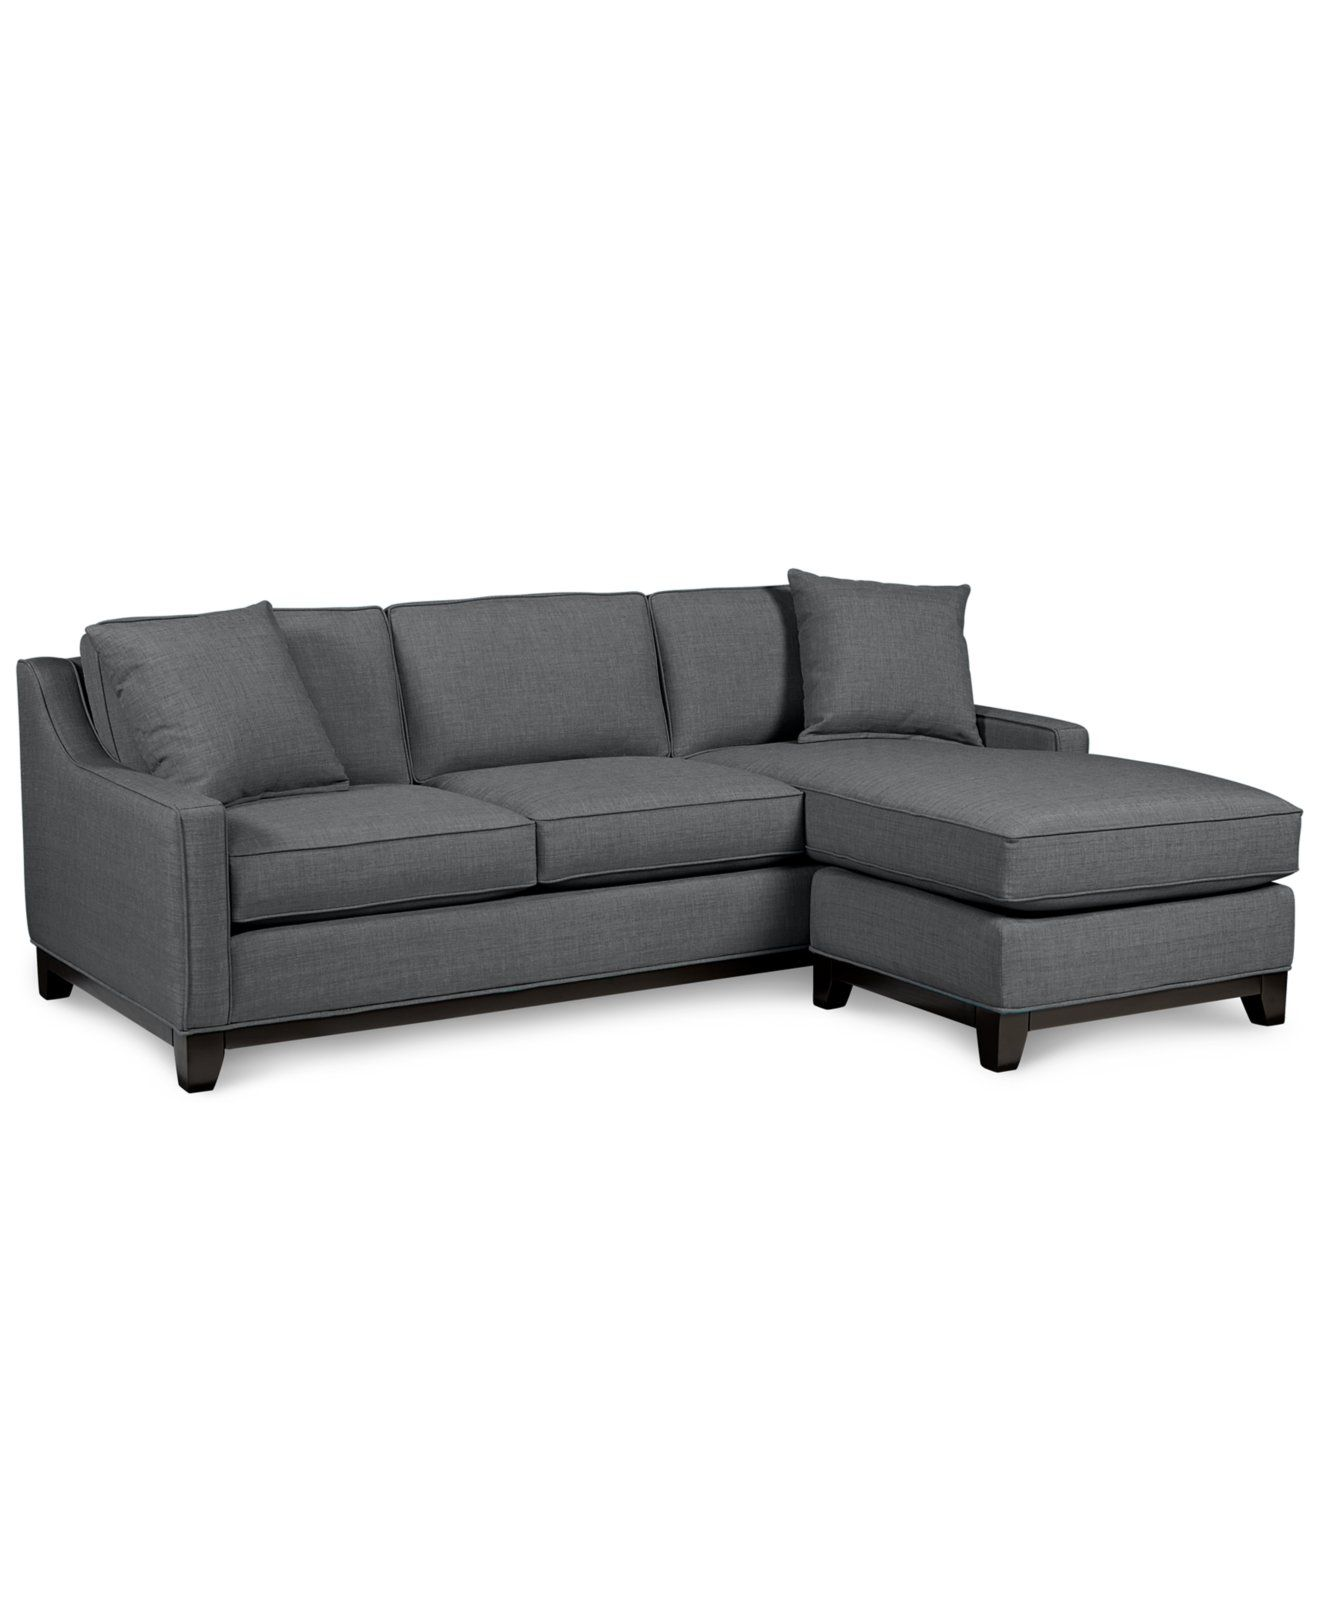 signature design by ashley furniture chamberly 3 piece sectional sofa in alloy living room pinterest